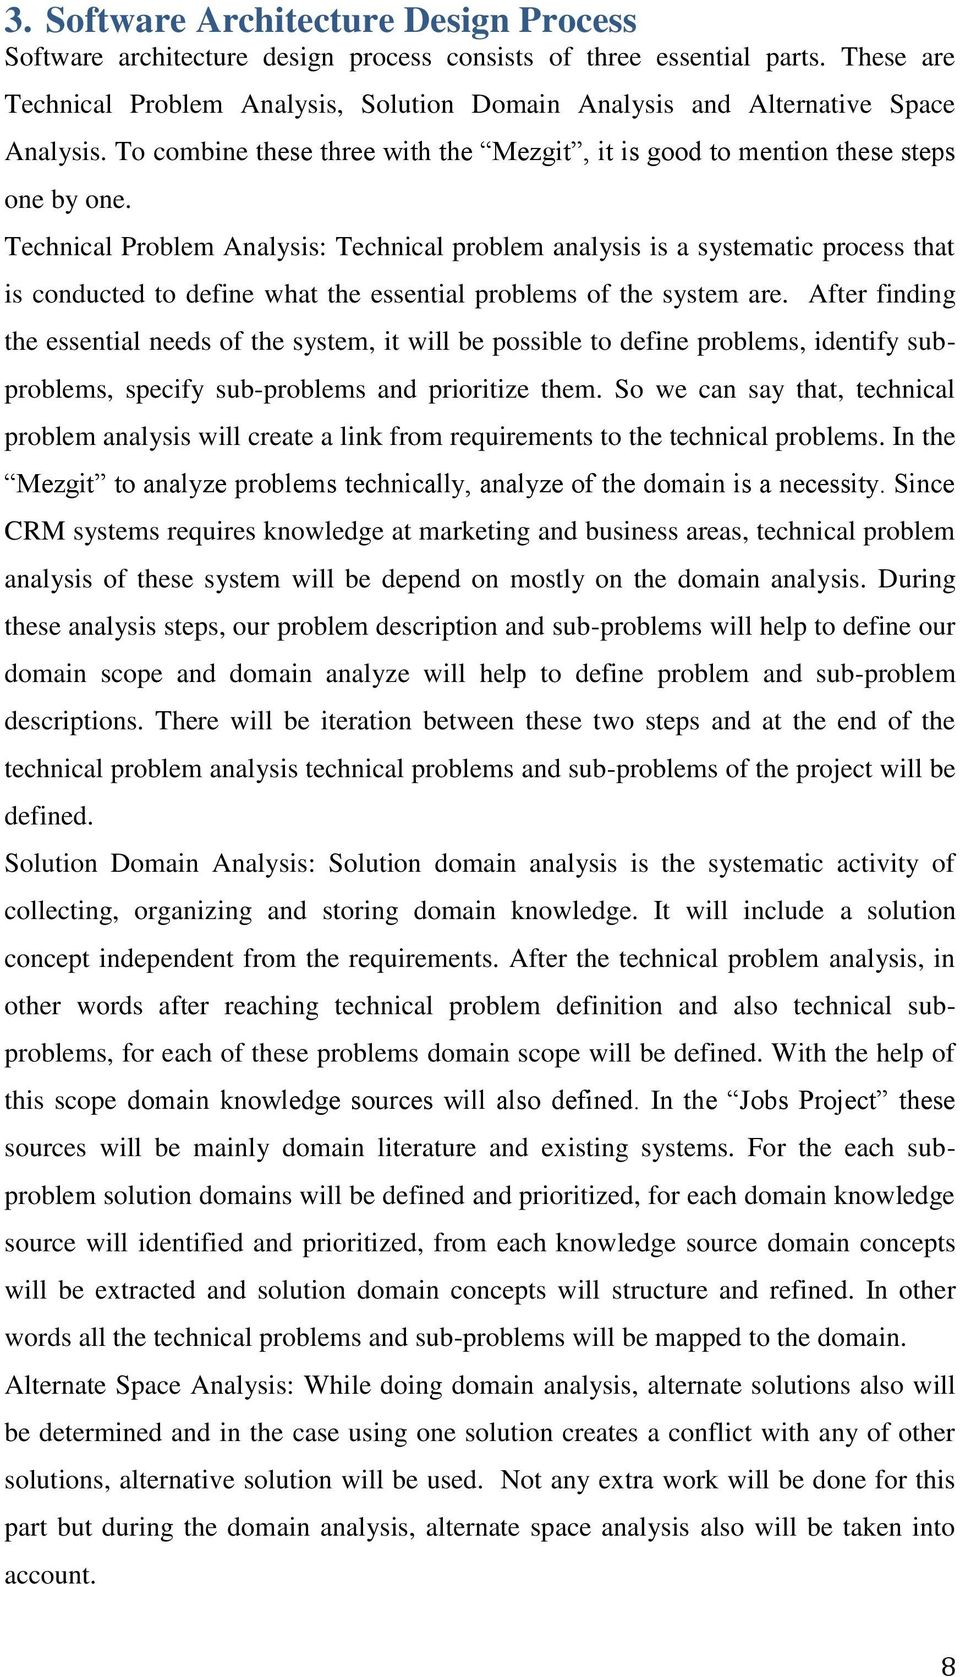 Technical Problem Analysis: Technical problem analysis is a systematic process that is conducted to define what the essential problems of the system are.